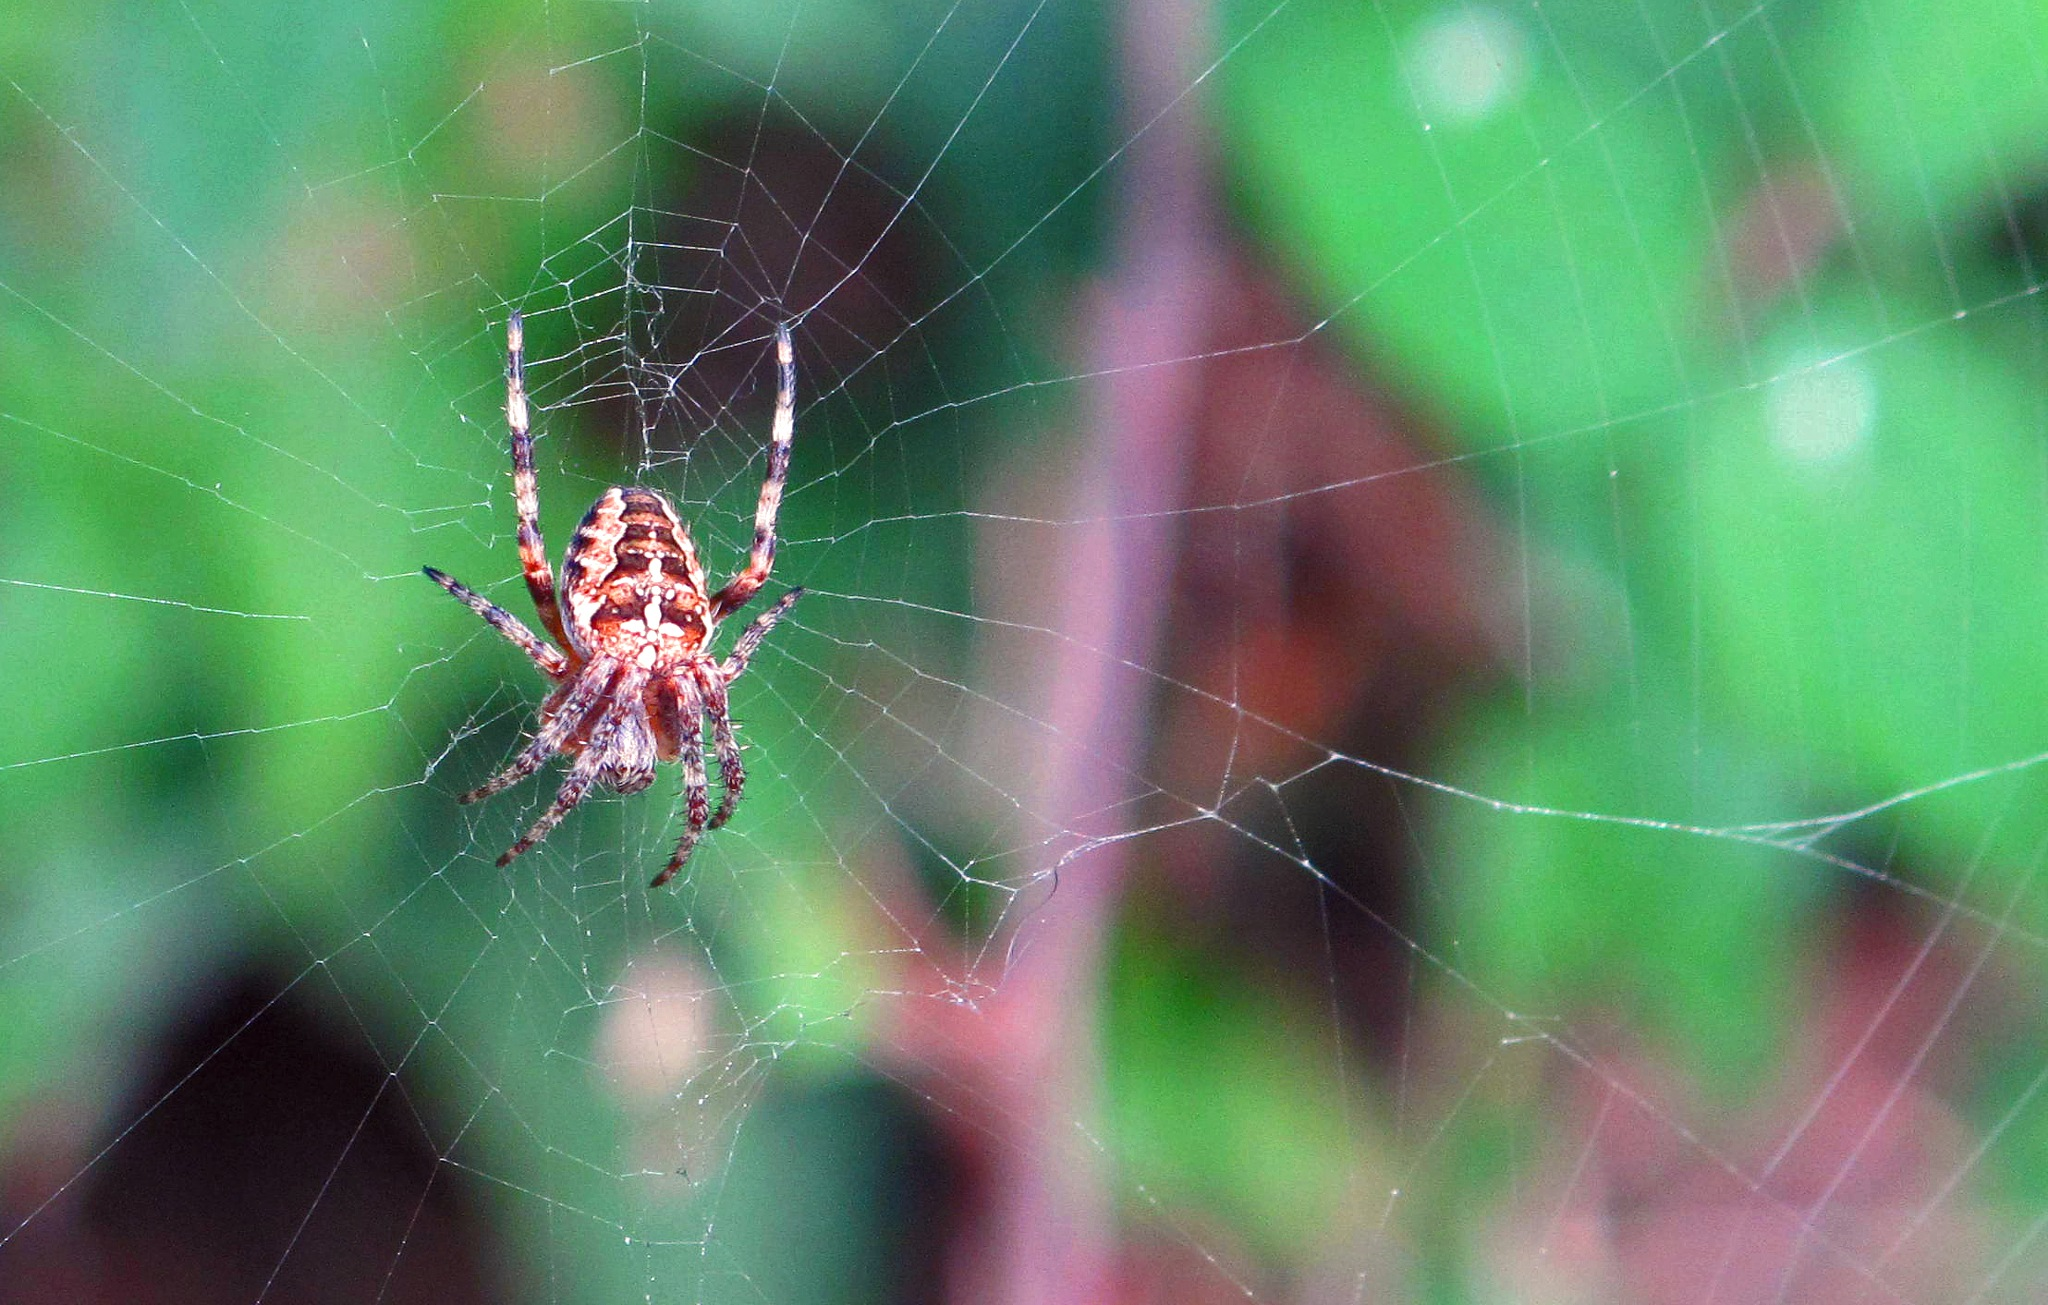 Spider on the web. by jamez